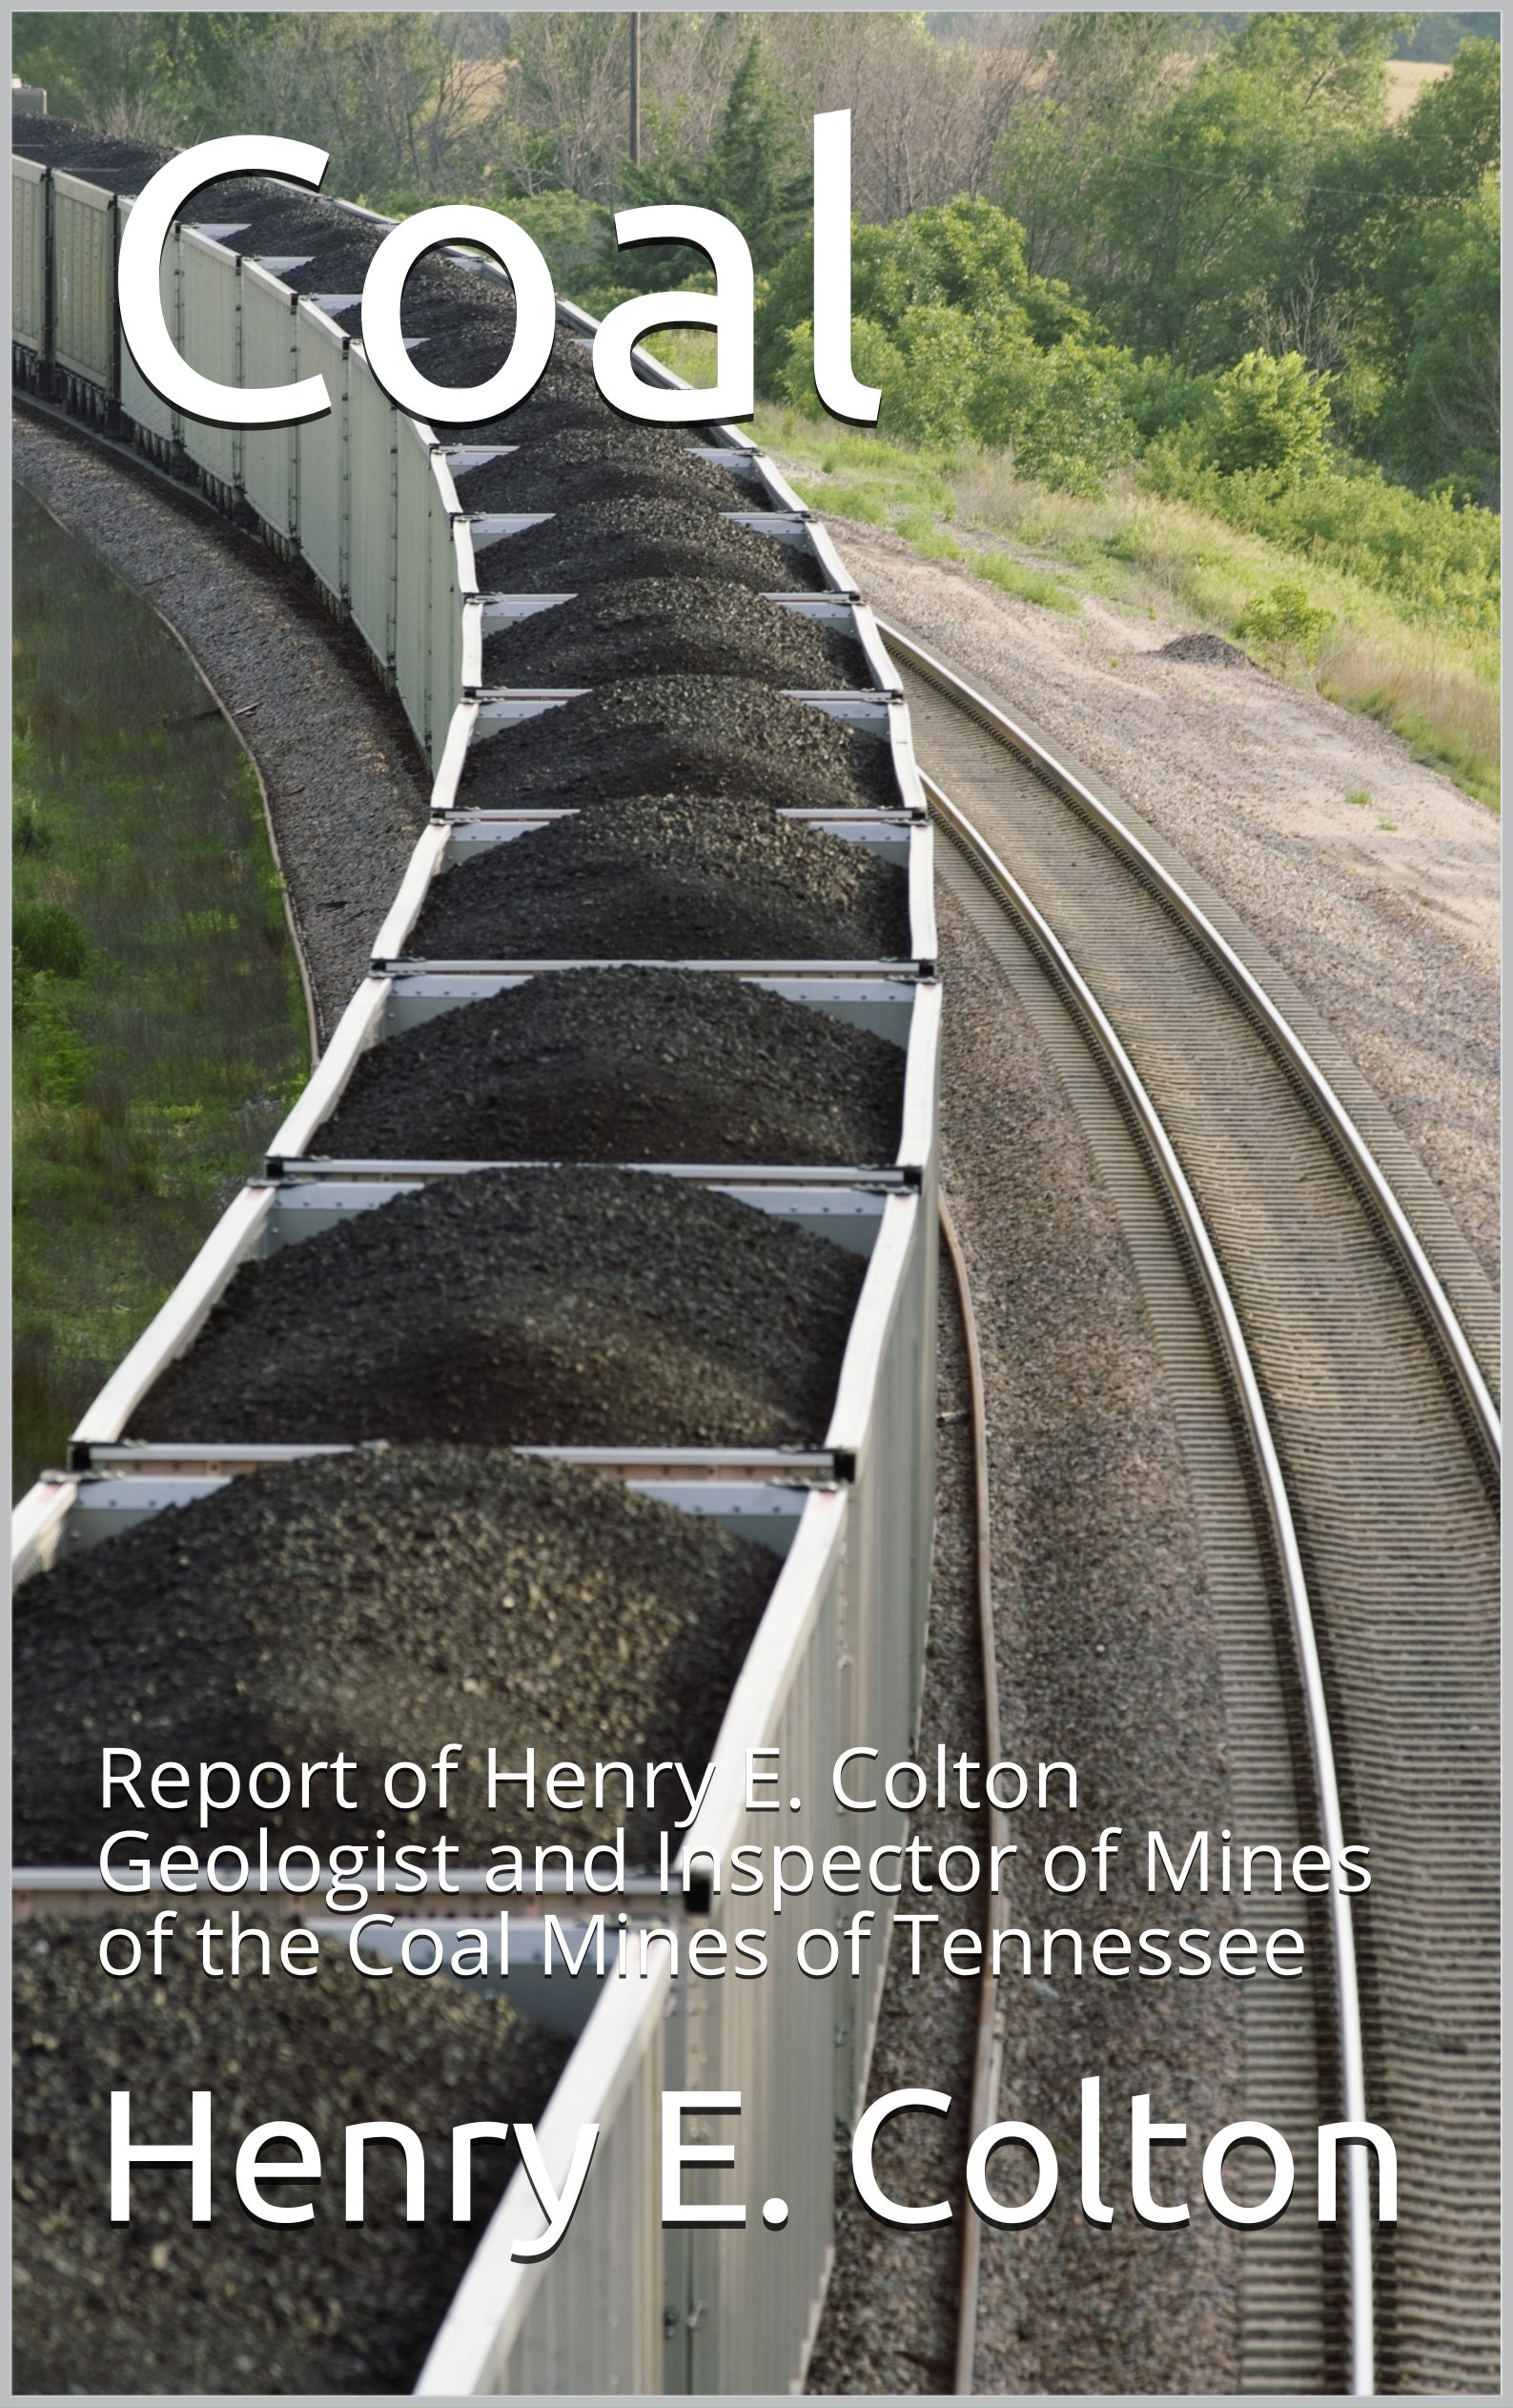 Coal: Report of Henry E. Colton Geologist and Inspector of Mines of the Coal Mines of Tennessee